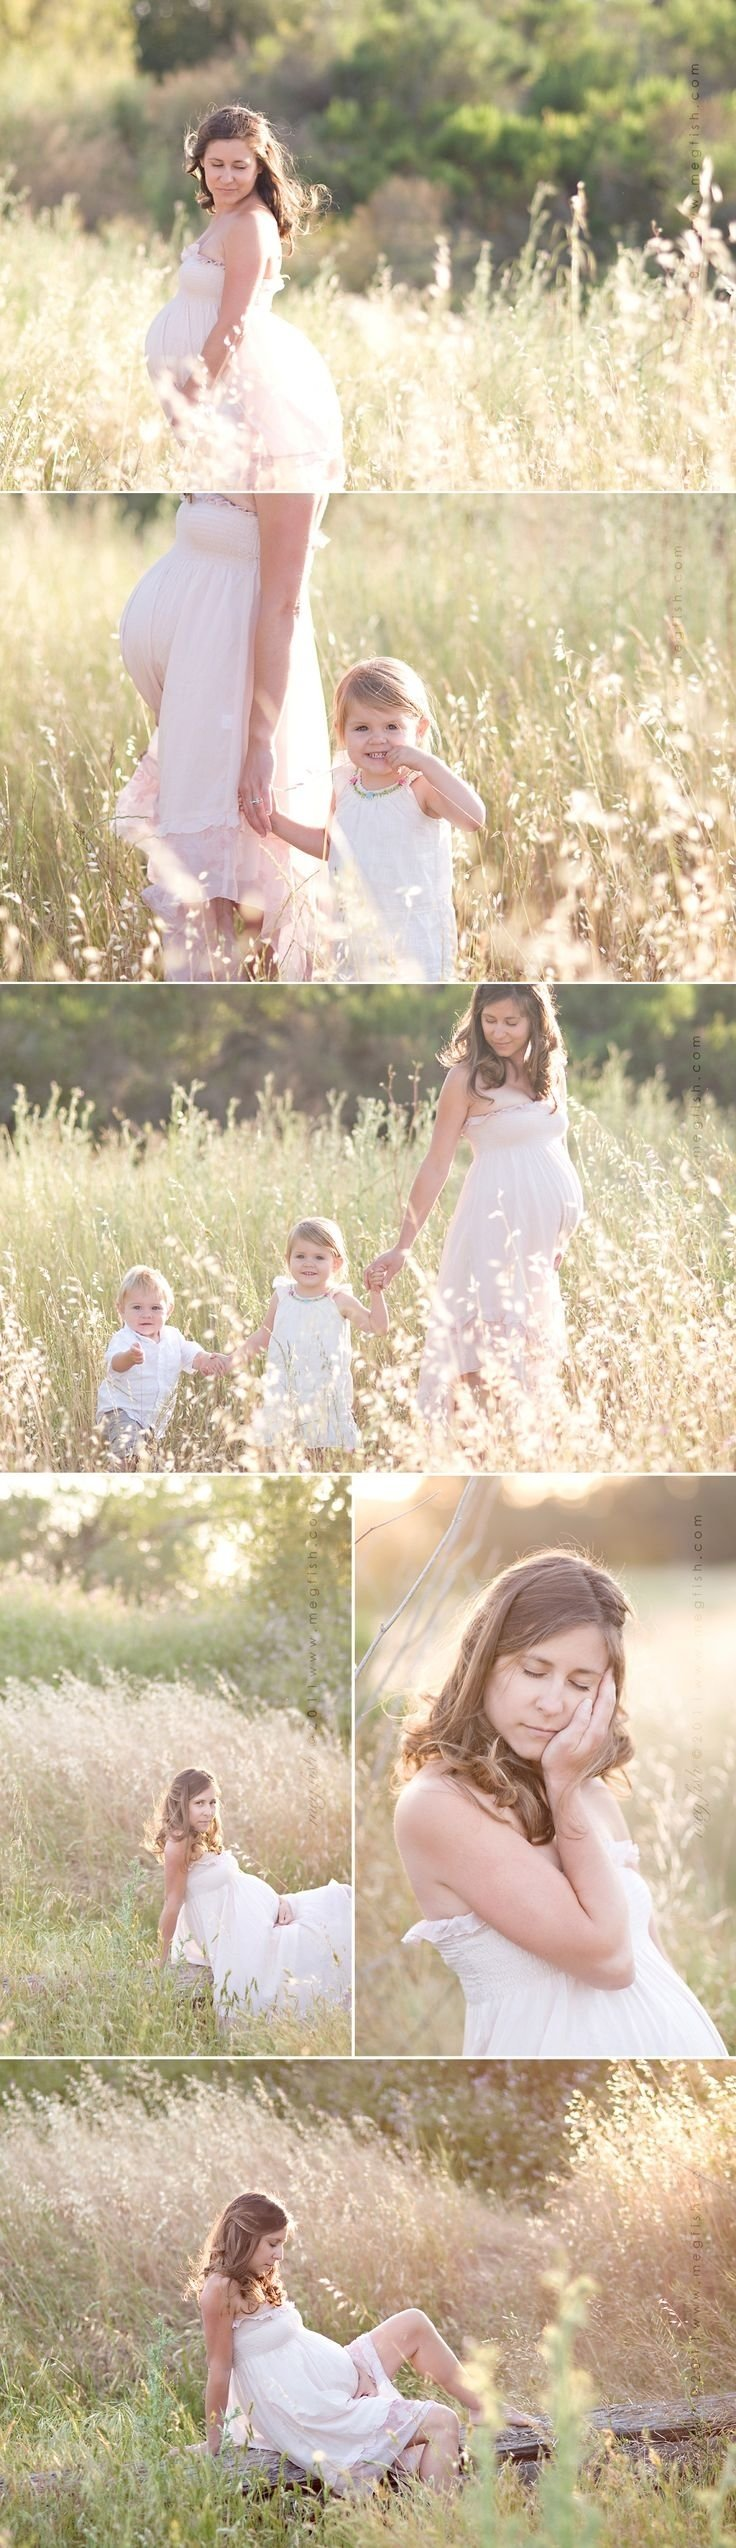 10 Trendy Maternity Picture Ideas With Children 171 best maternity poses images on pinterest pregnancy photos 2020